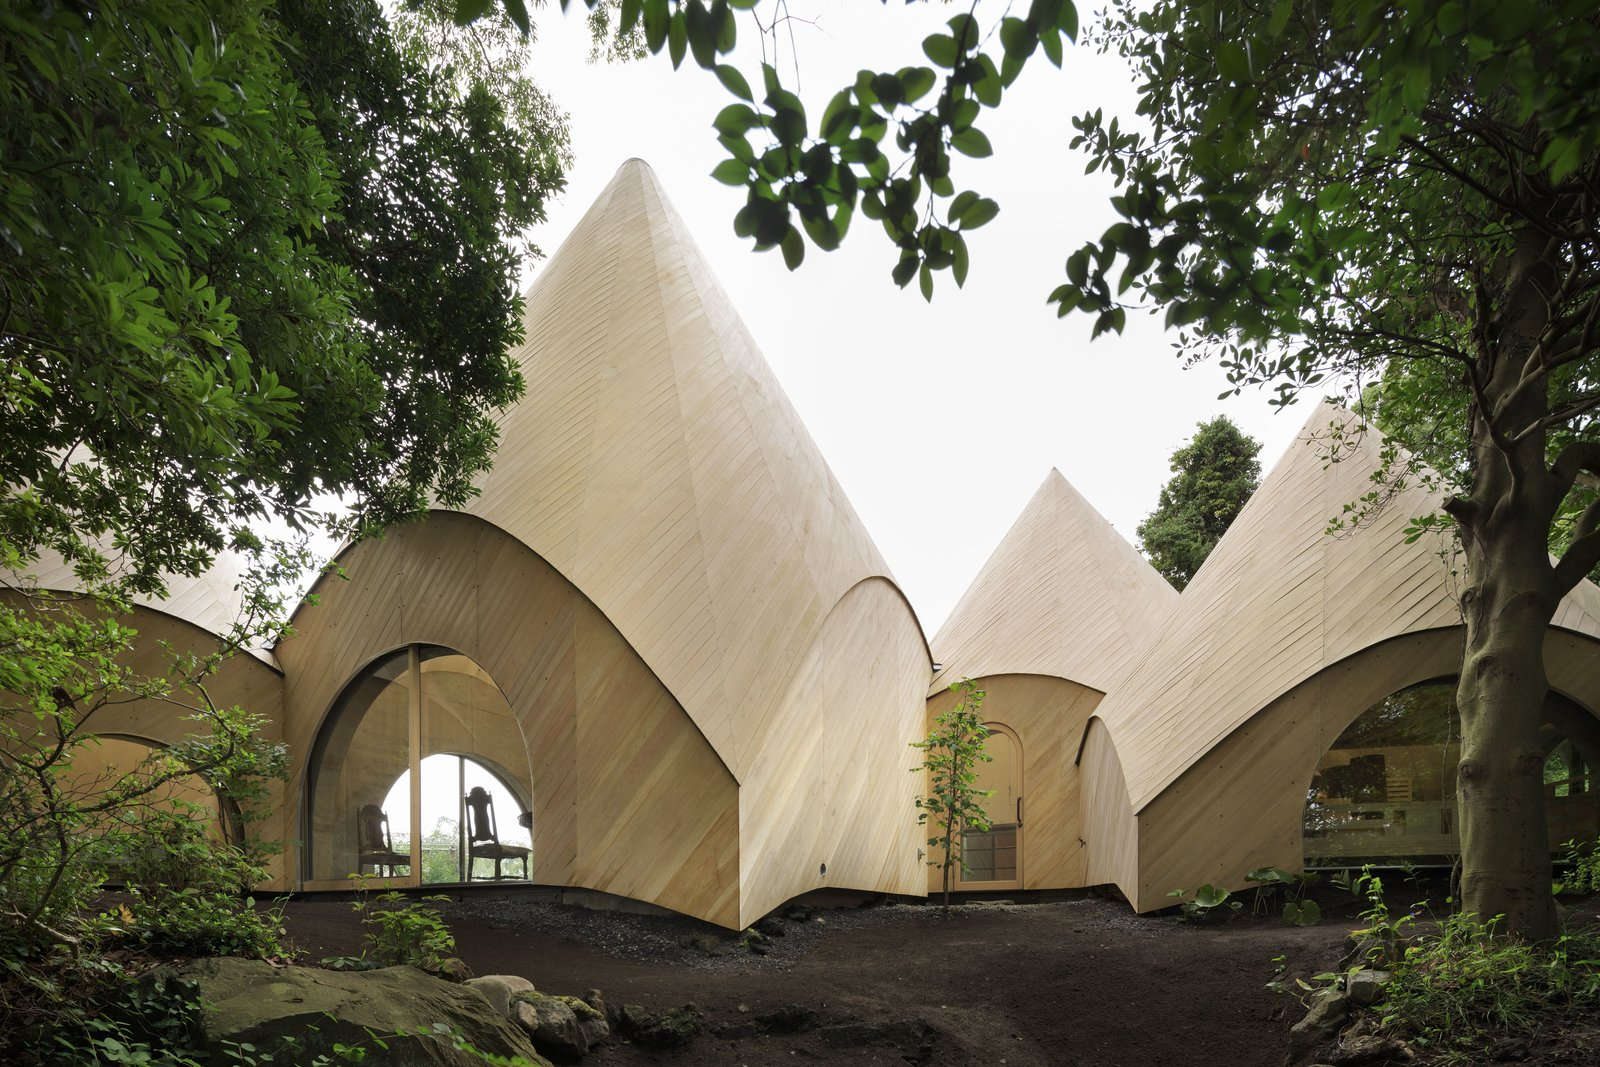 Designed for two women in their 60s, this collection of little huts make up a private home and a food service for the community.  Unabashedly Strange Houses in Japan by Luke Hopping from How to Age Gracefully in Japan